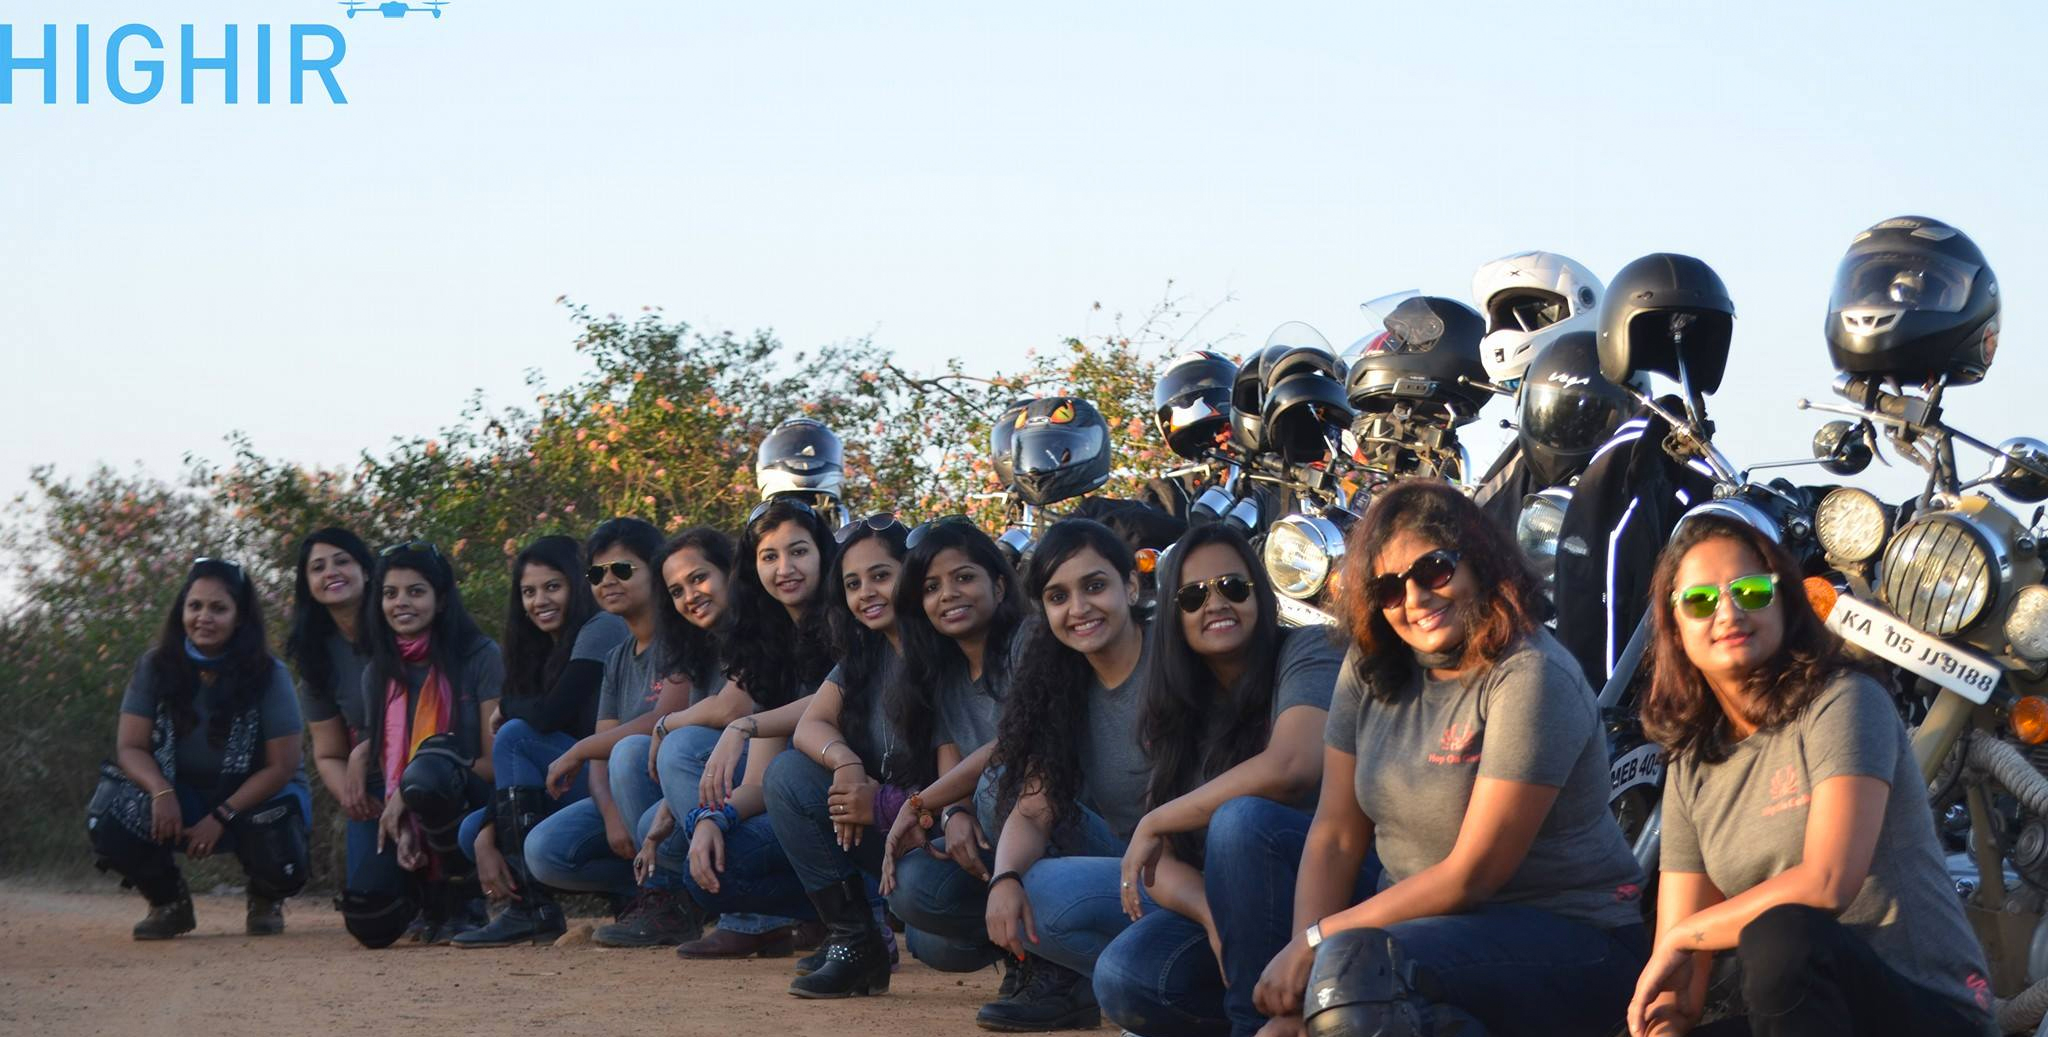 The Women Motorbike Clubs of India